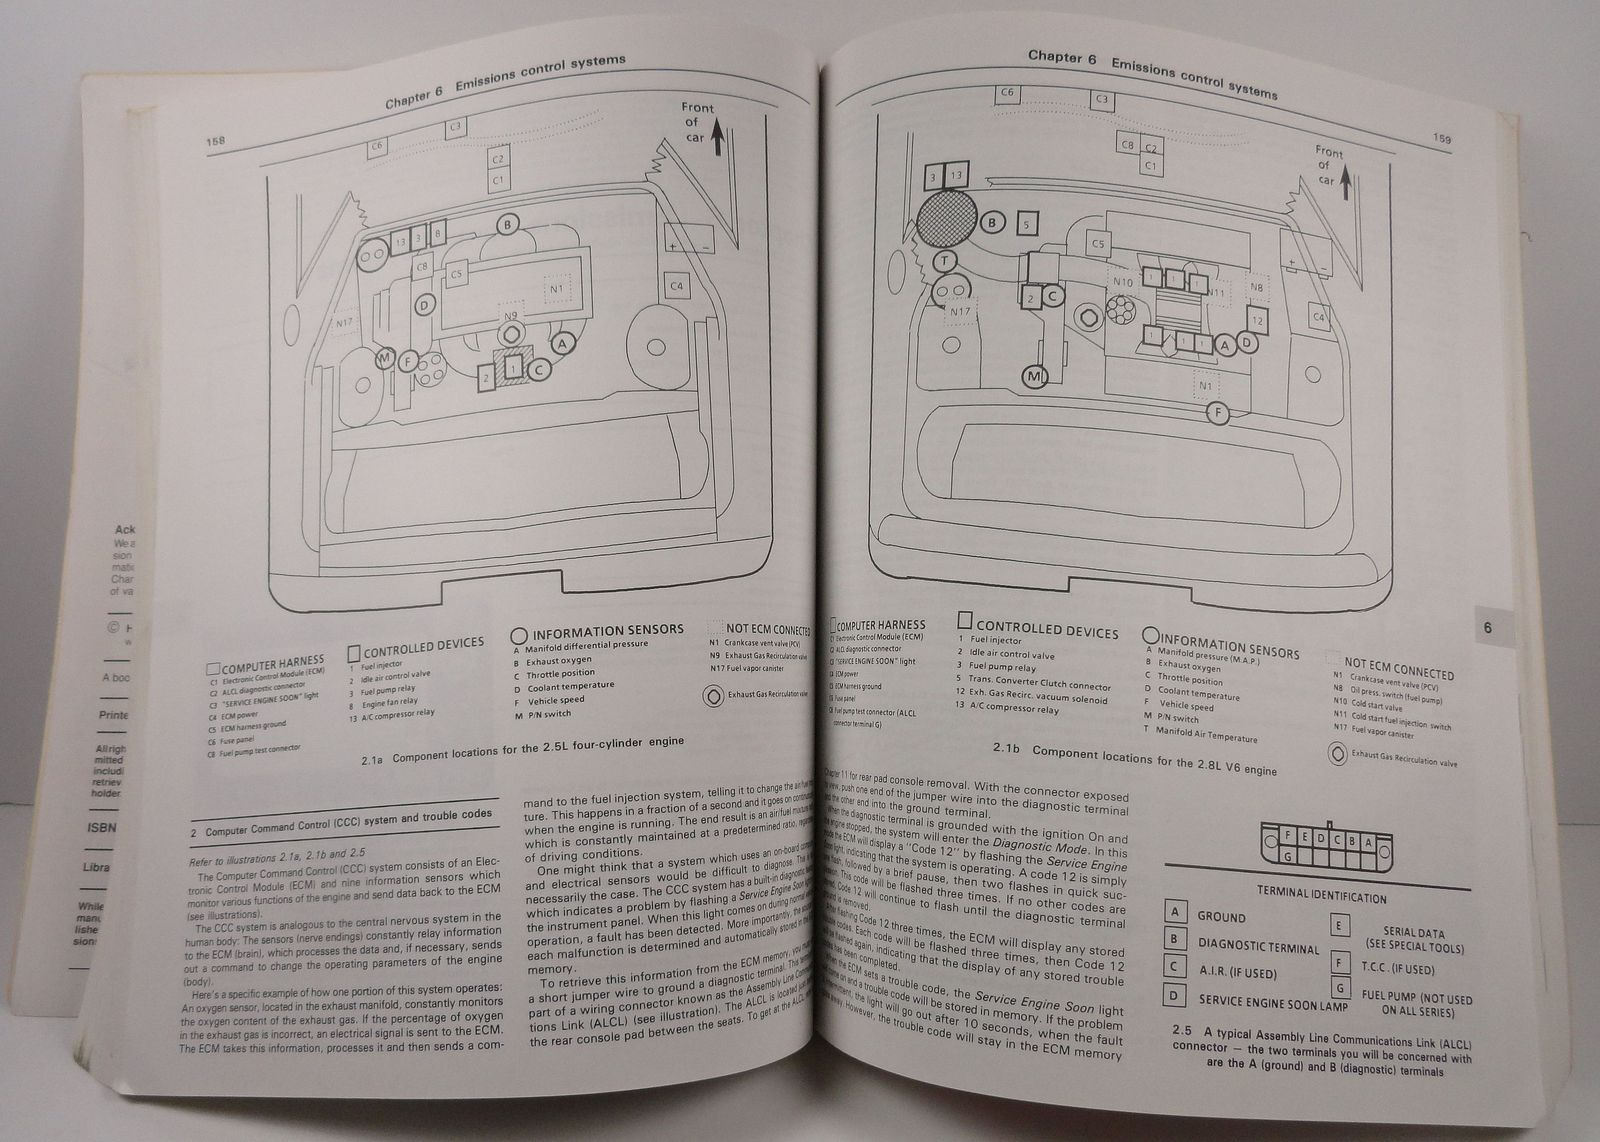 Pontiac Fiero 1984 to 1988 Automotive Repair Manual